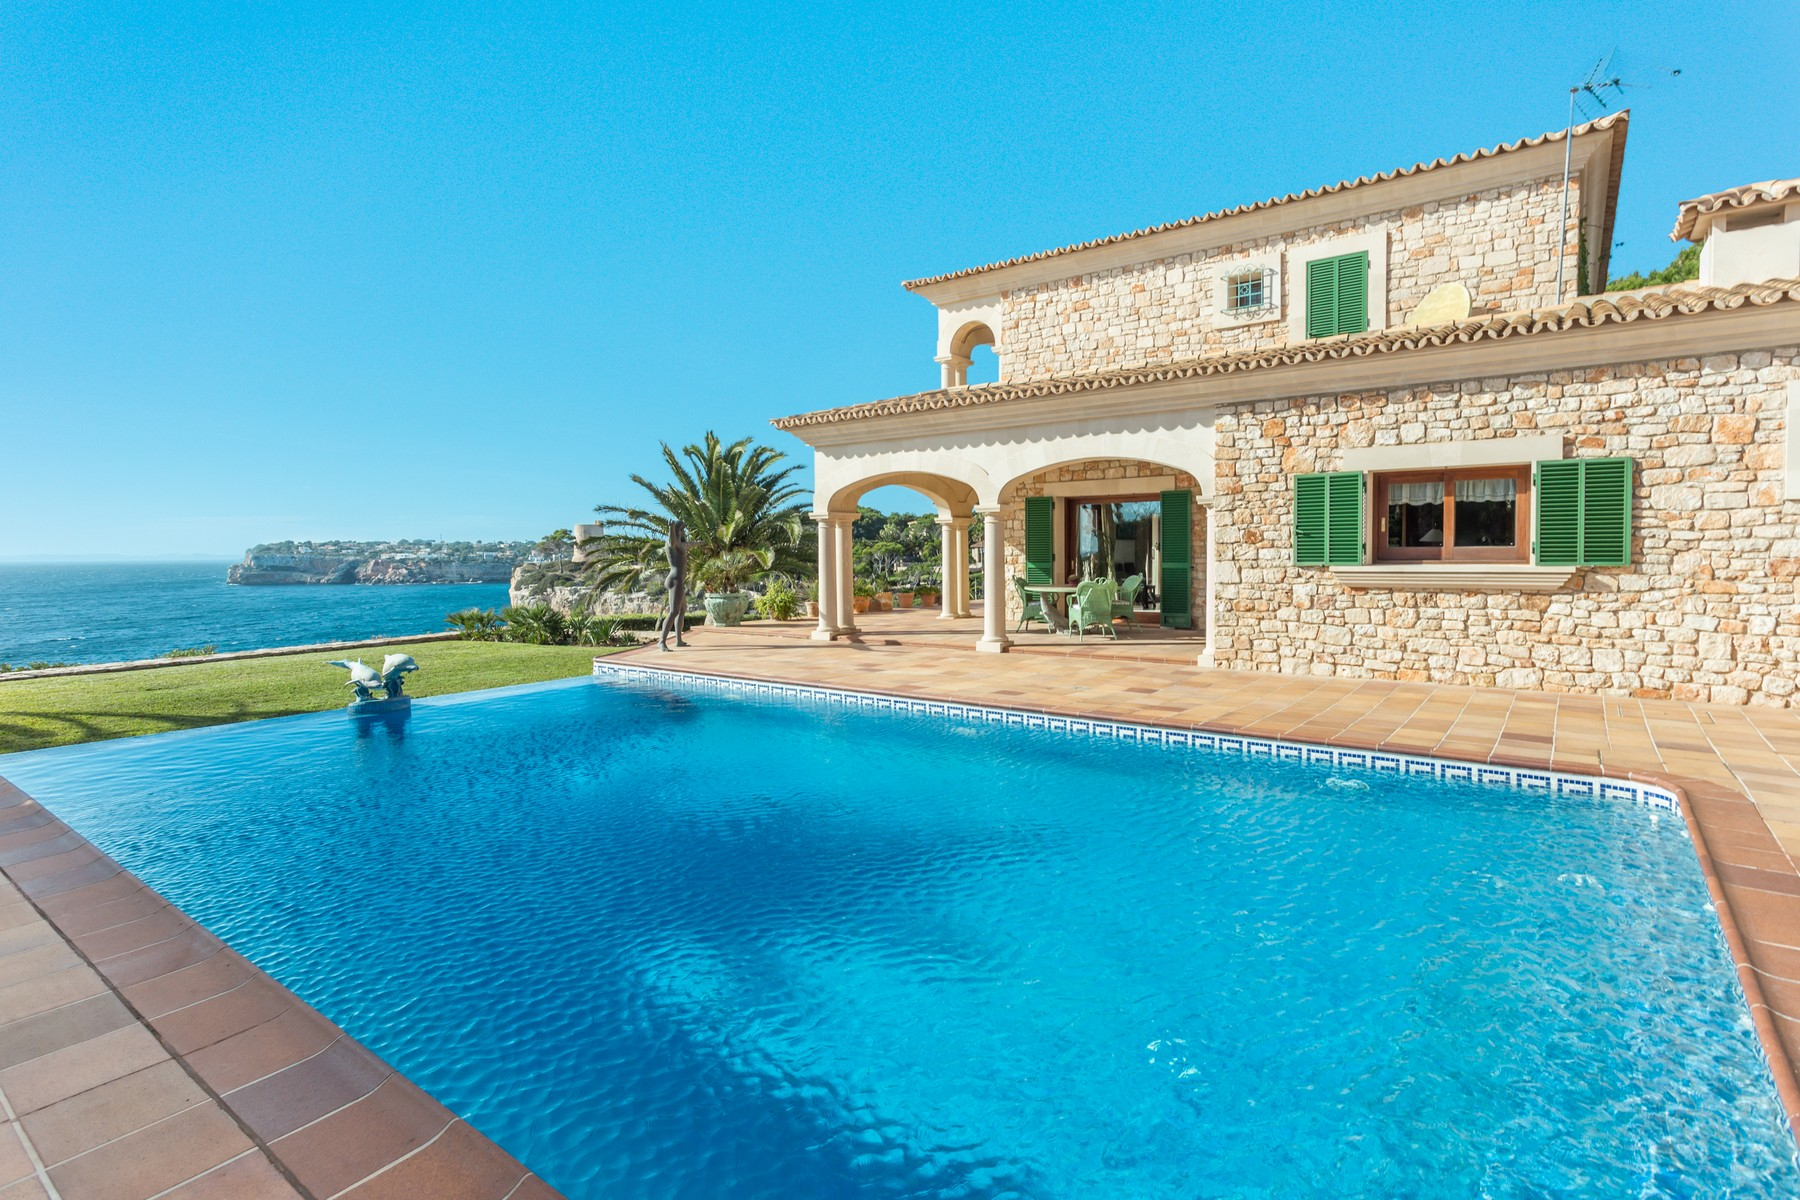 Single Family Home for Sale at Exclusive frontline villa in Santanyí Santanyi, Balearic Islands, 07171 Spain